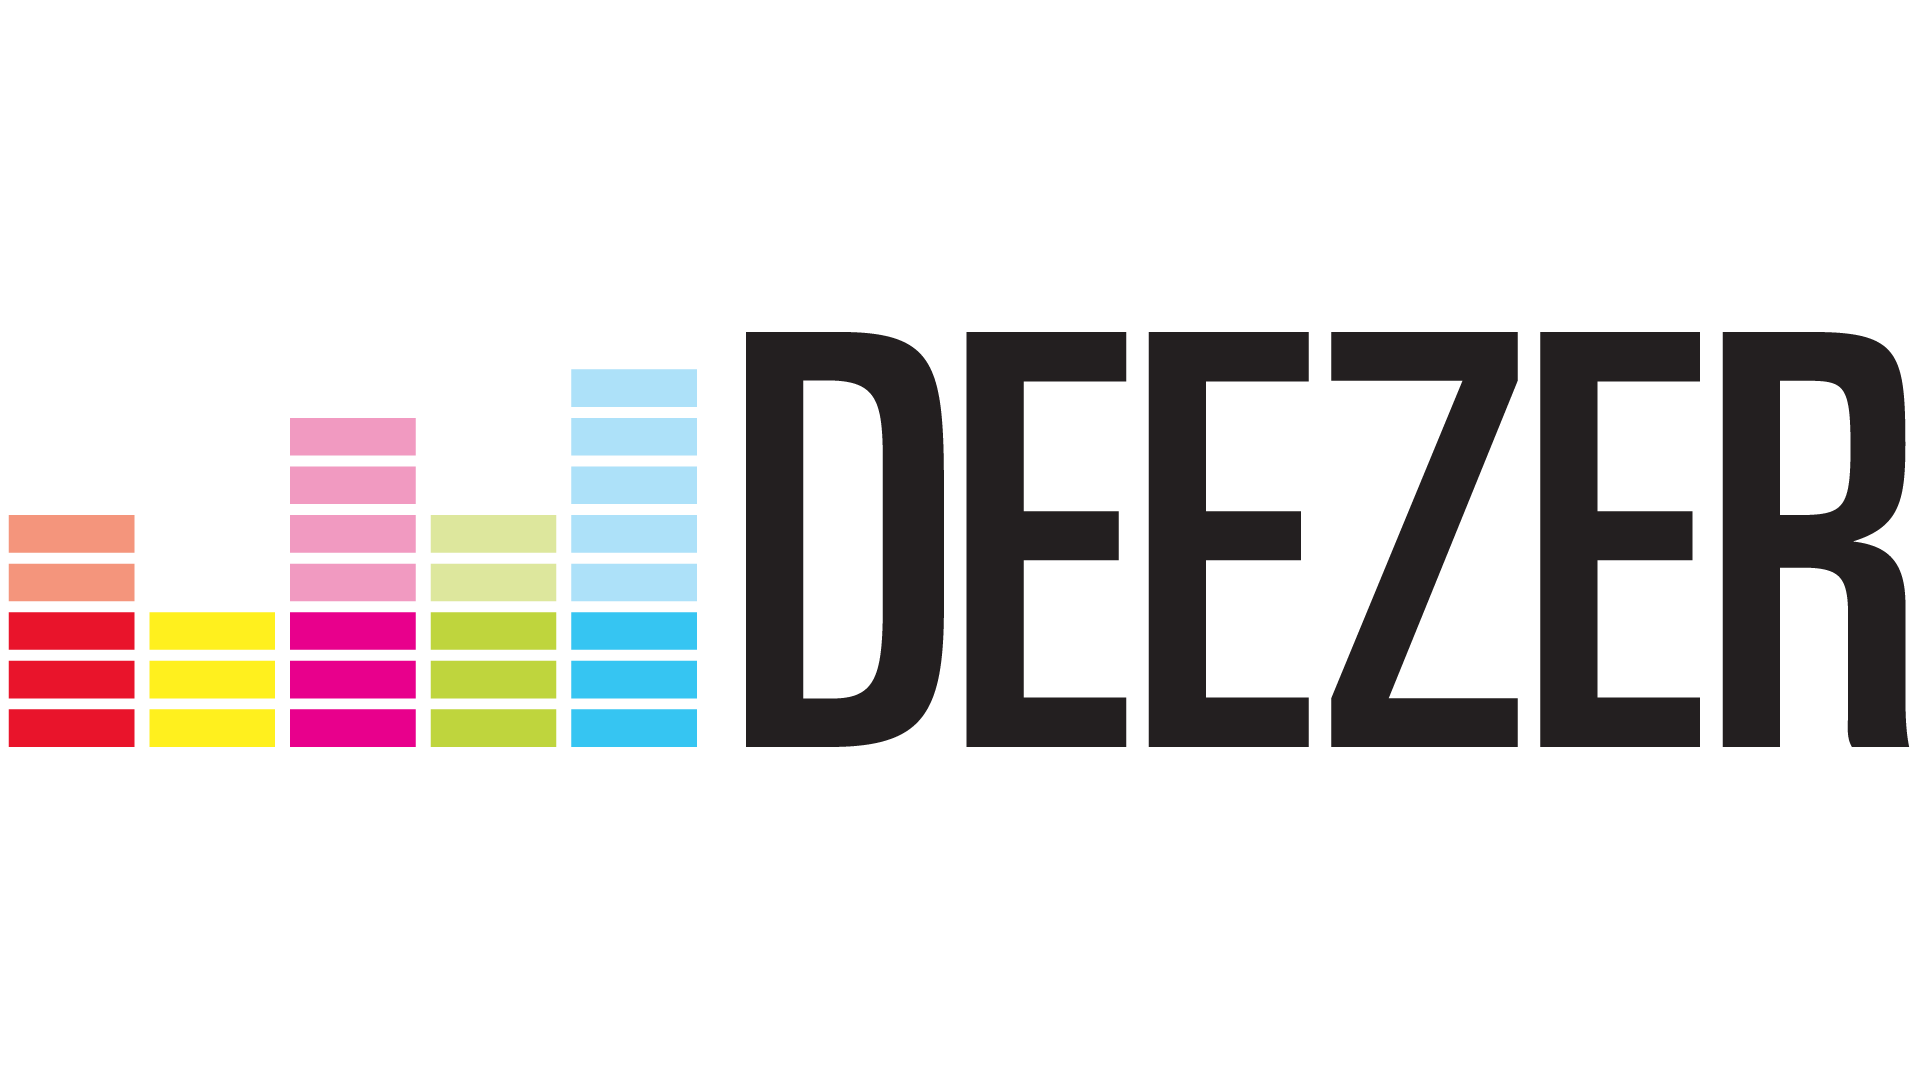 100 Deezer Followers or 100 Deezer Favorites HQ & Guarantee